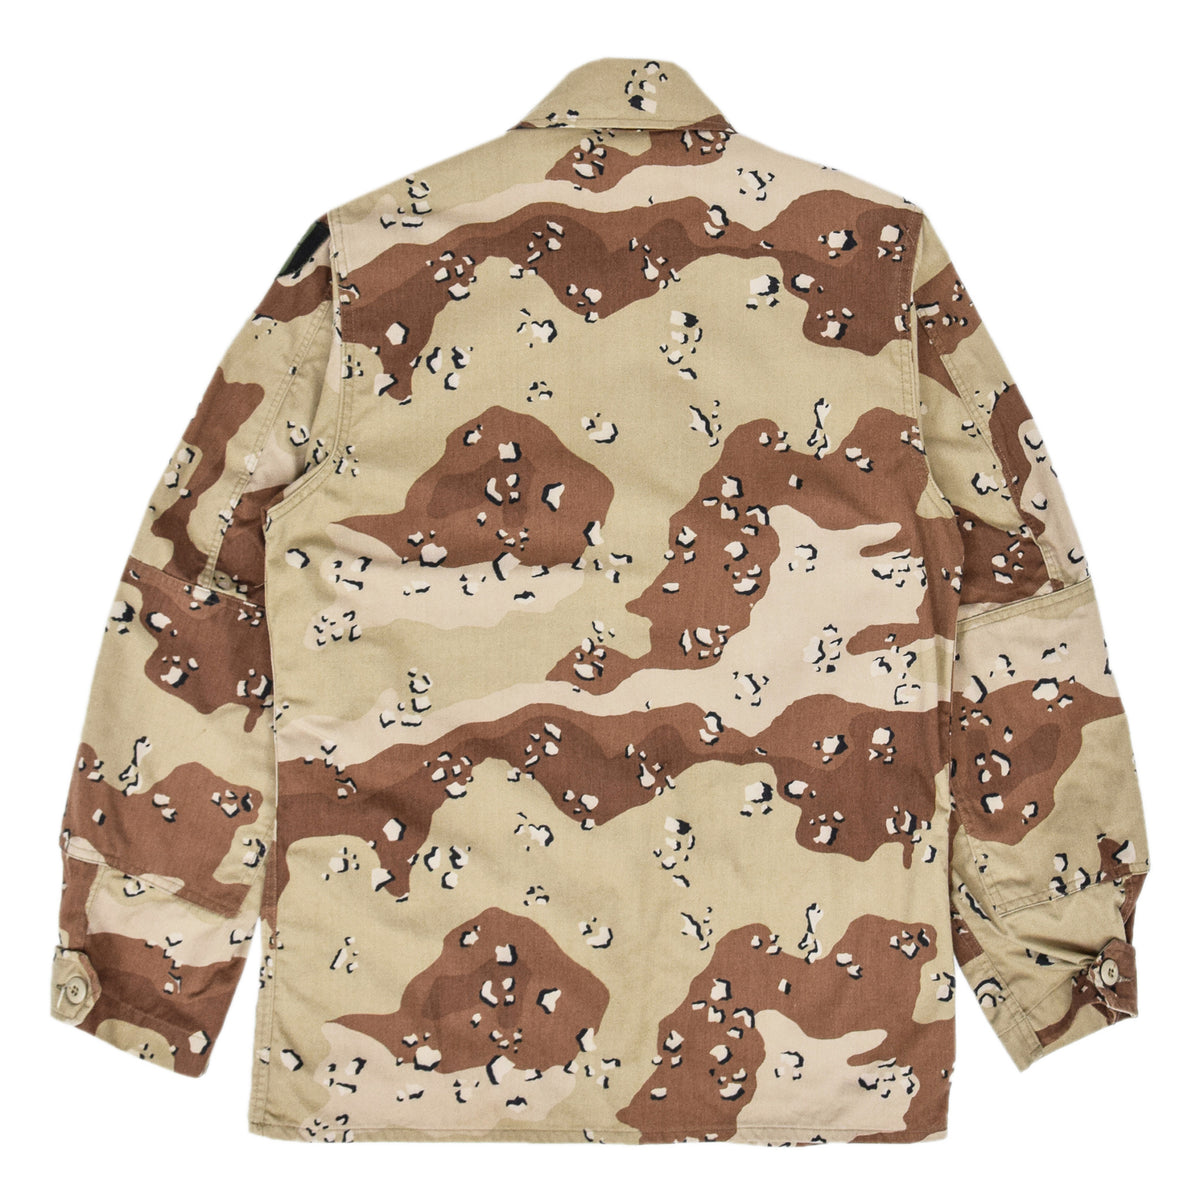 Vintage 80s US Army Choc Chip Desert Camo BDU Combat Coat Field Jacket M back